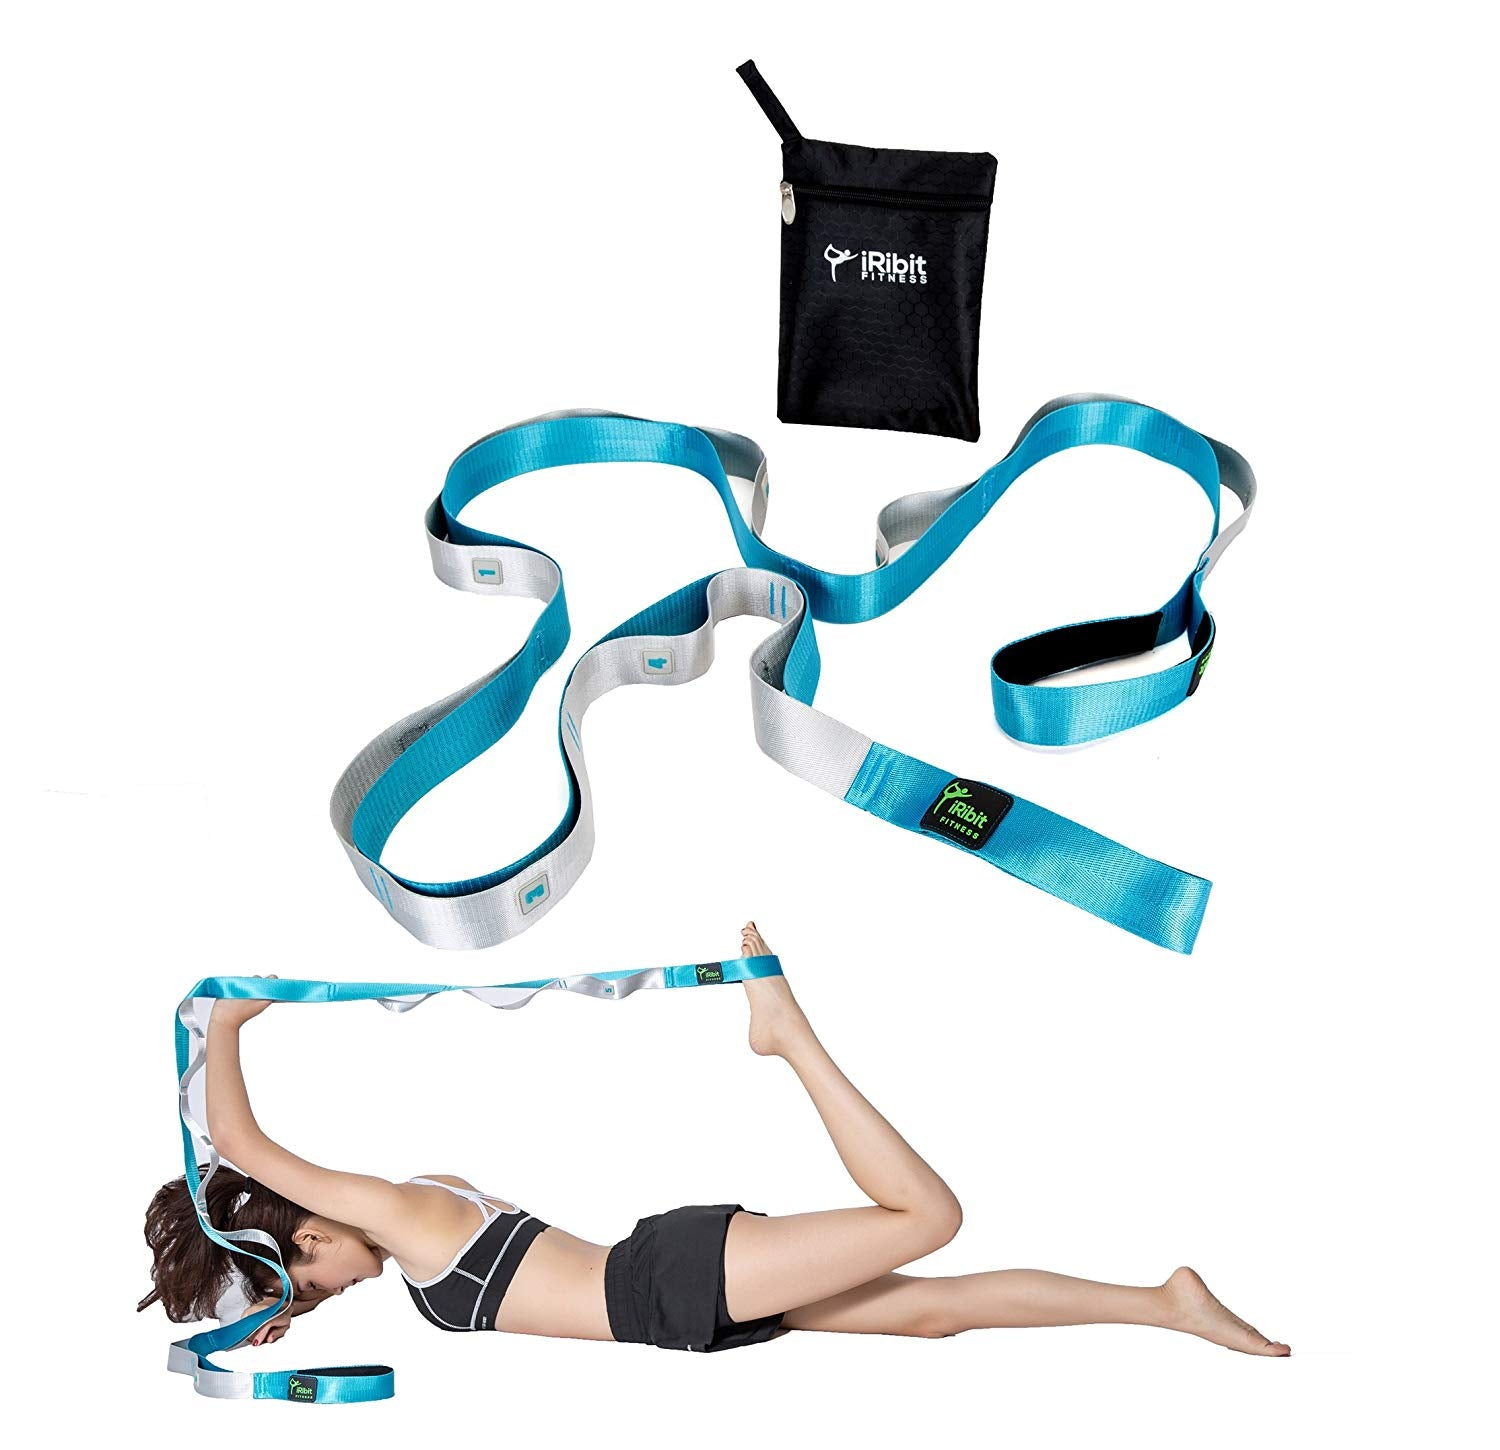 8 Ft Long Stretching Strap For Physical Therapy Yoga Pilates Ballet Iribit Fitness